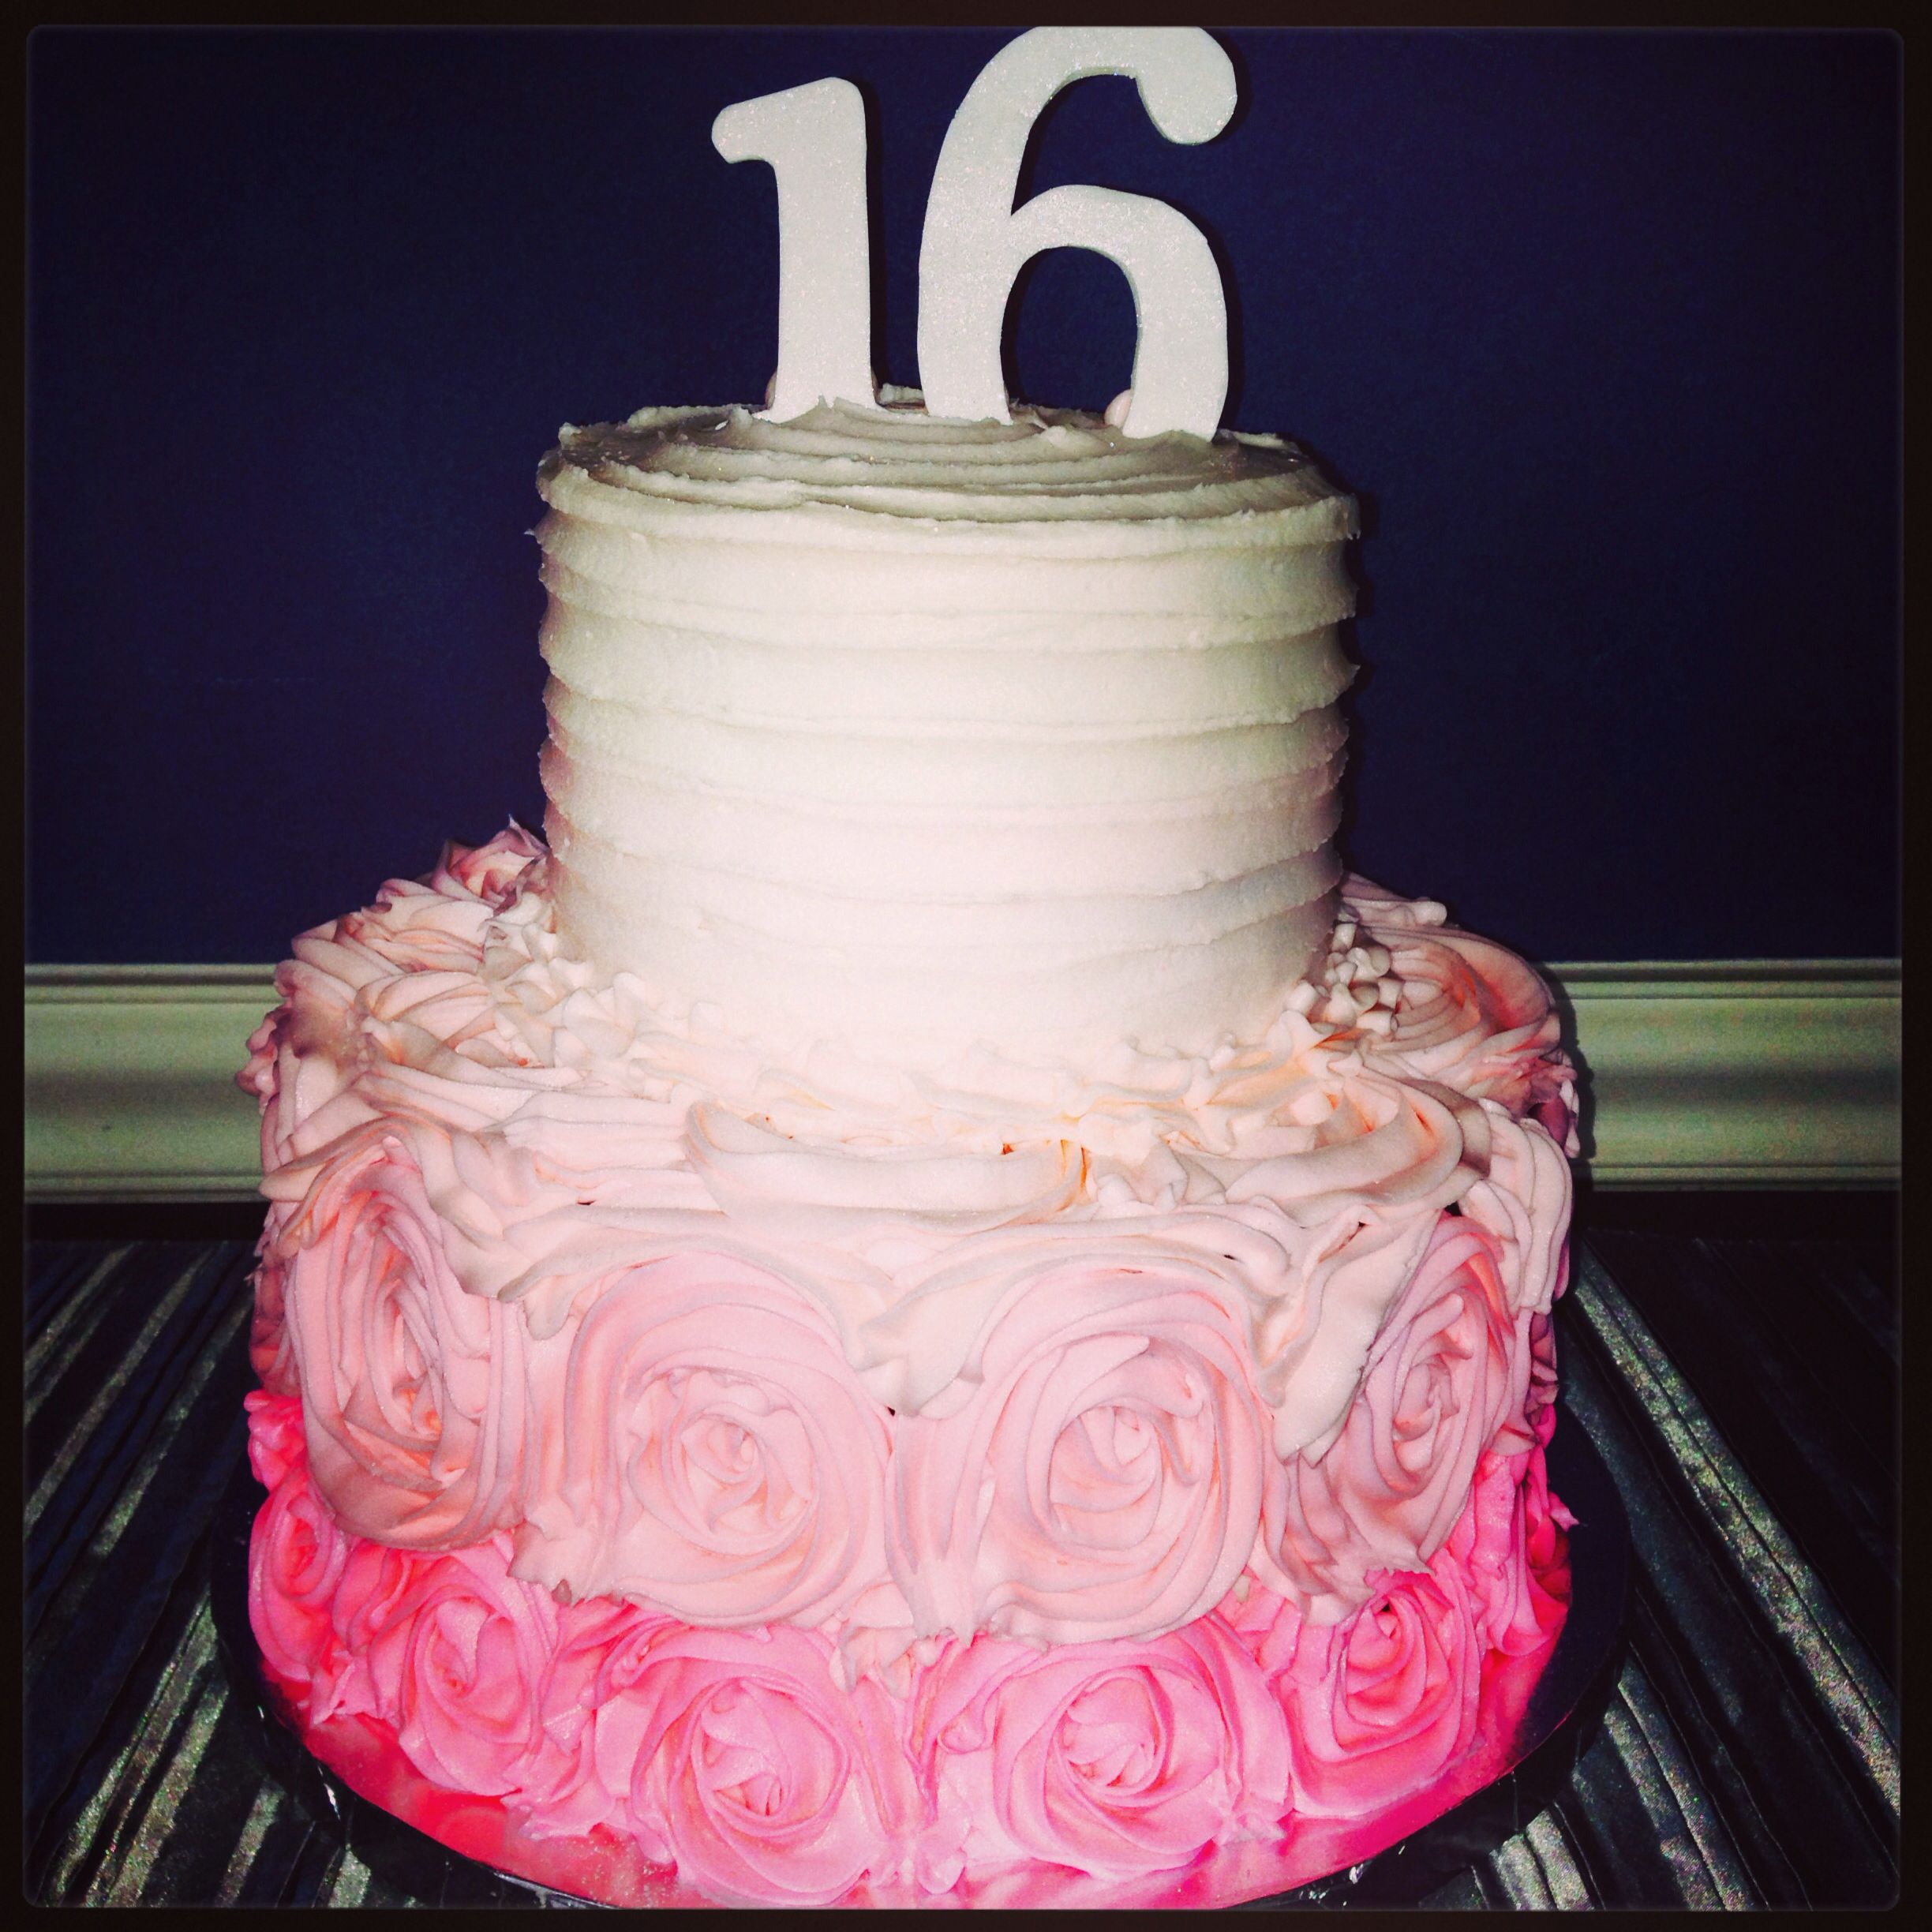 Simple Sweet 16 Cake I Love The Roses Just Not The Pink